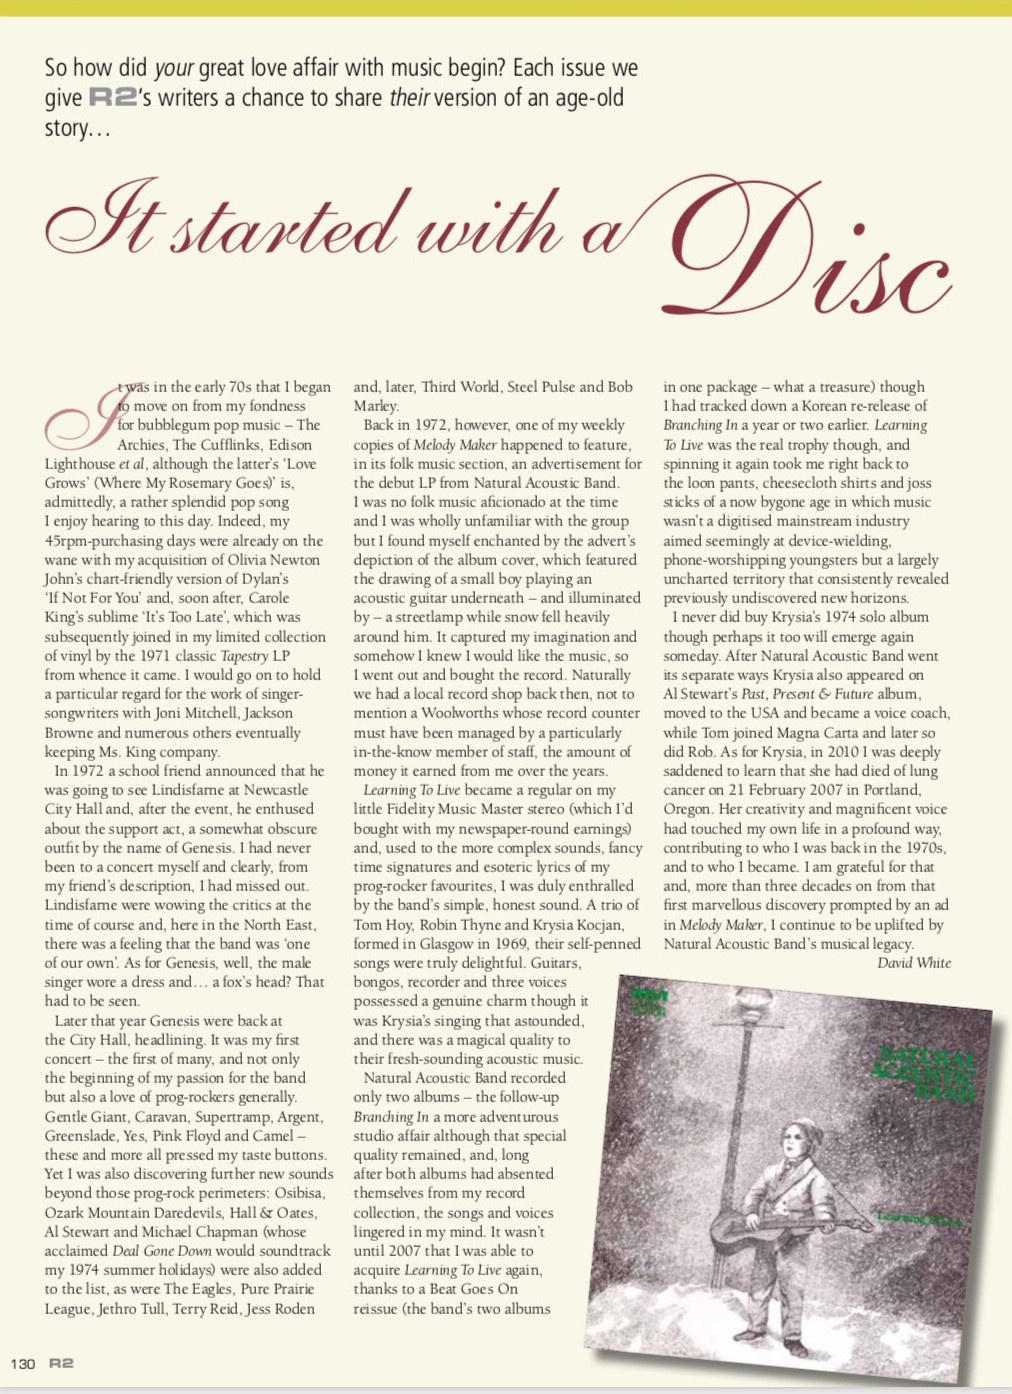 many thanks to David White assistant editor RNR magazine for sending this article